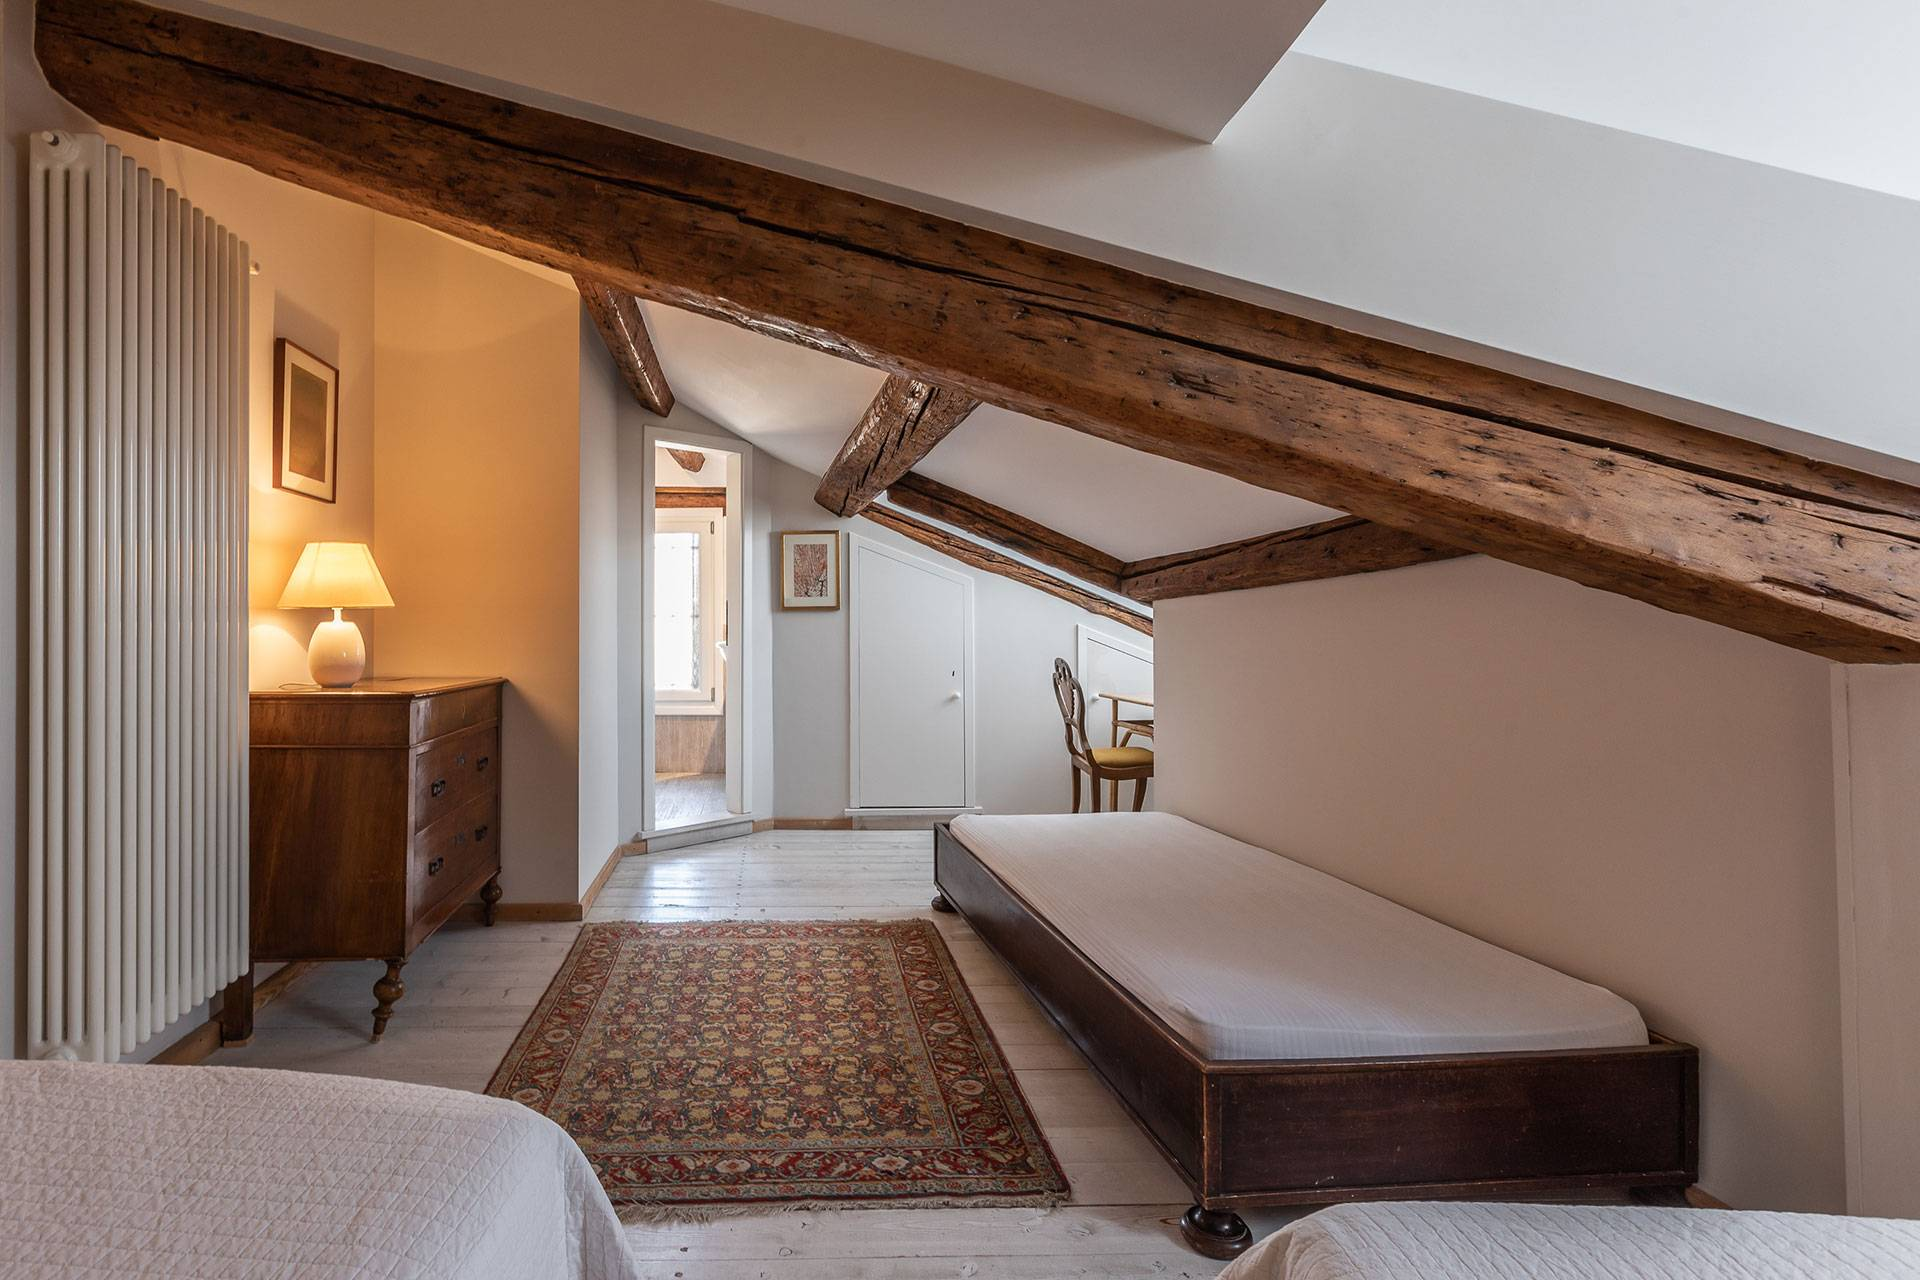 Attic level with 2 single beds